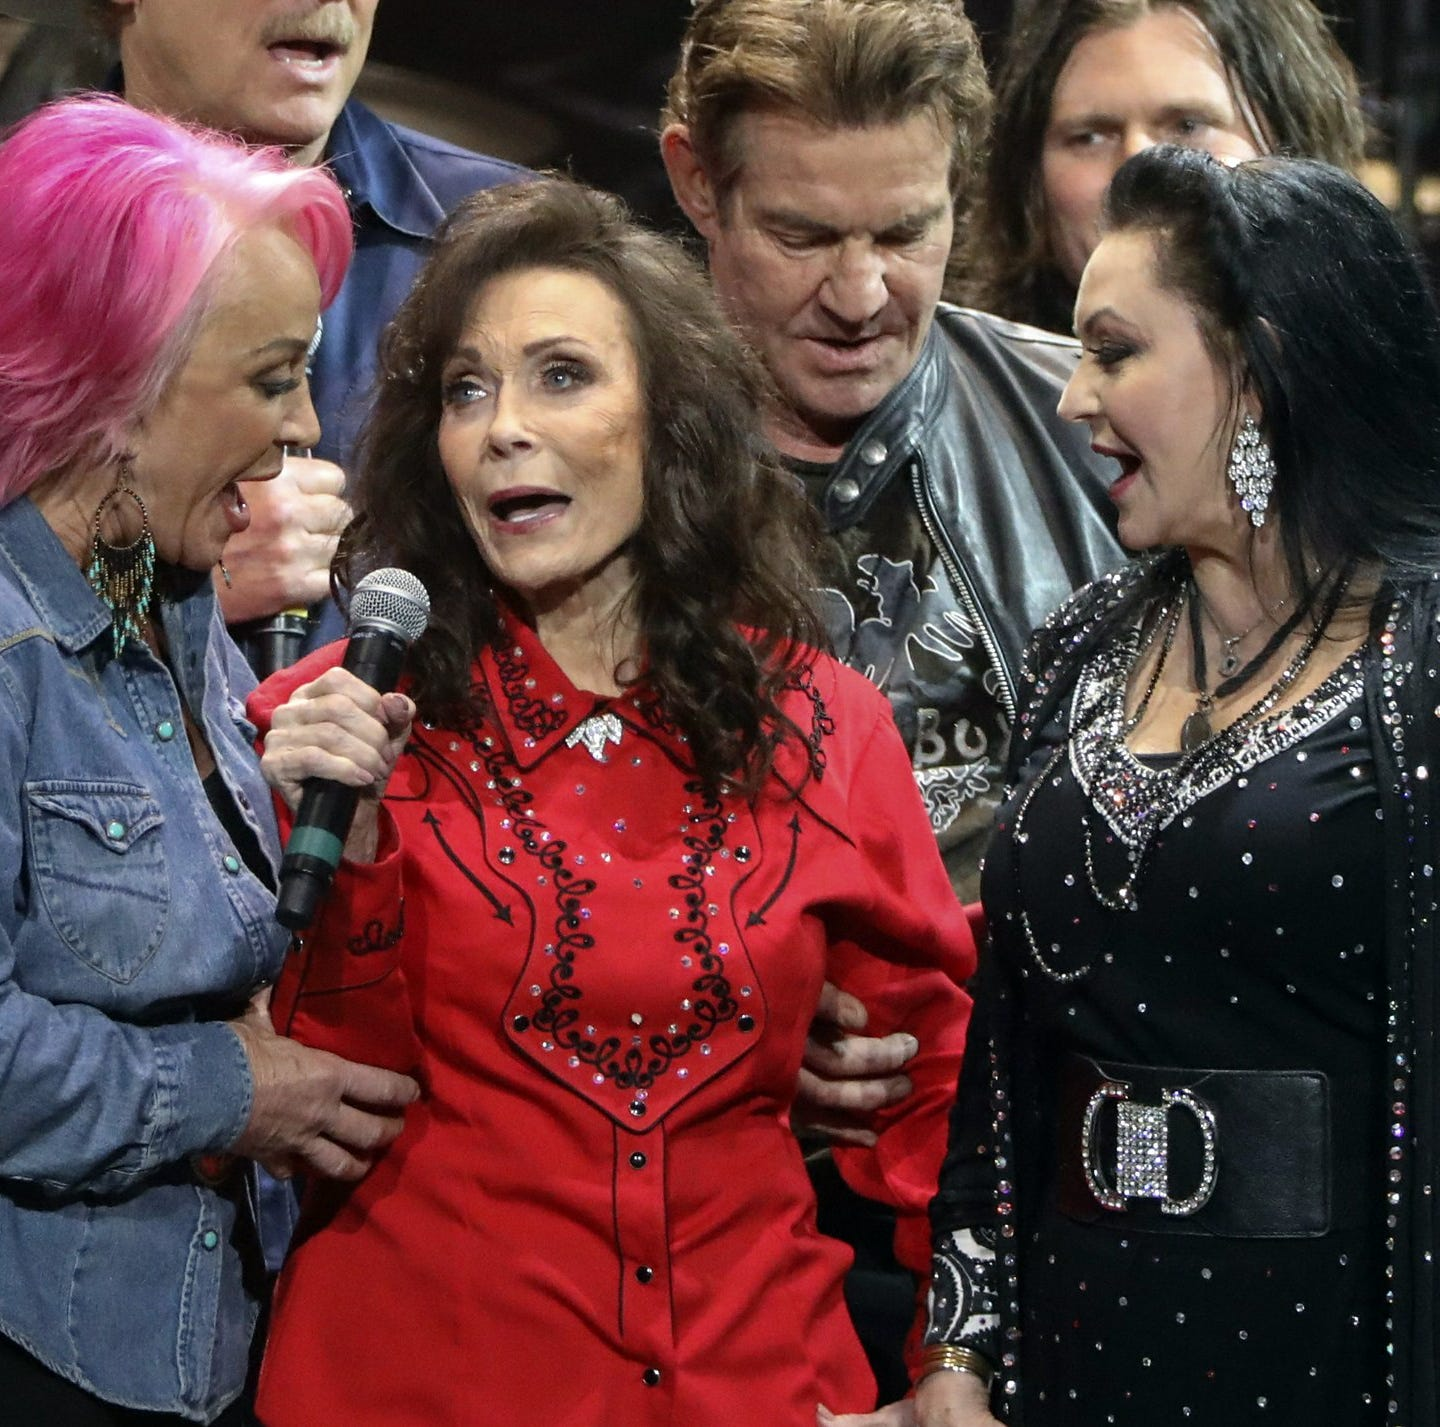 Kentucky's Loretta Lynn sings with friends in first public appearance since stroke